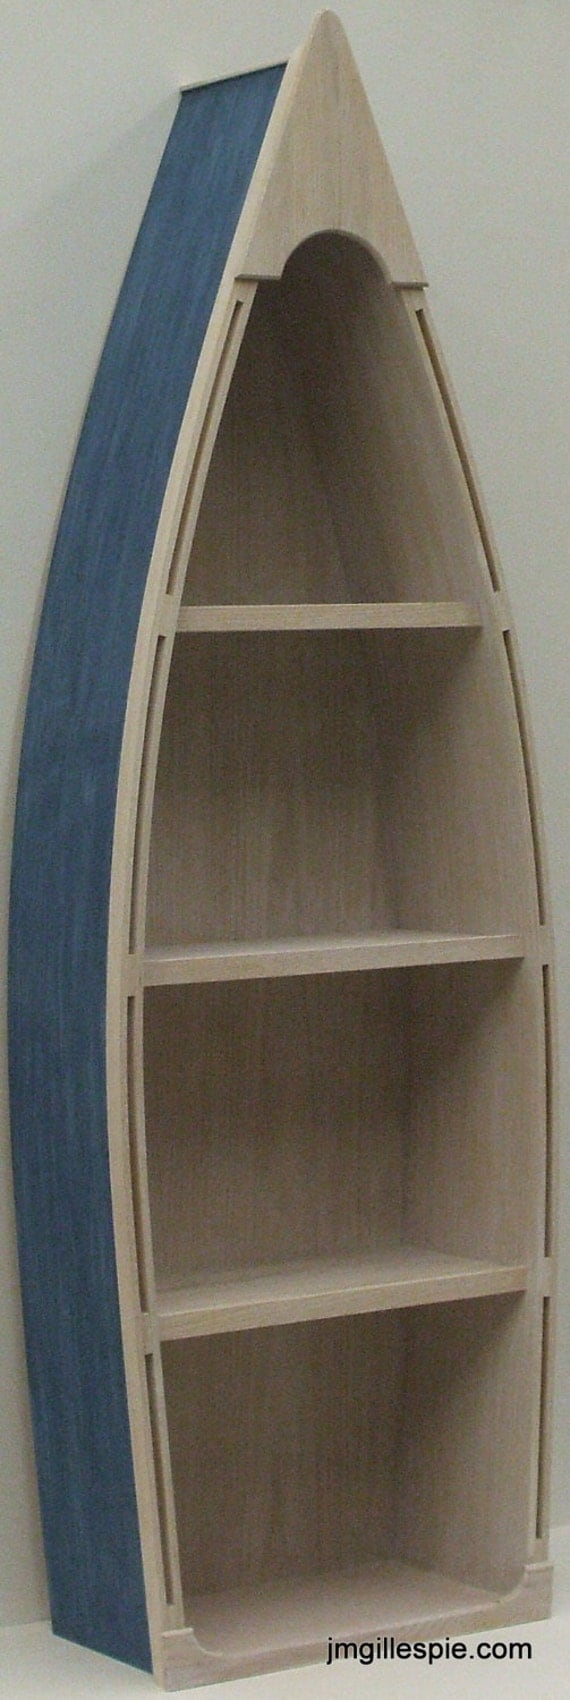 5 Foot Blue Row Boat Bookshelf Bookcase Shelves By